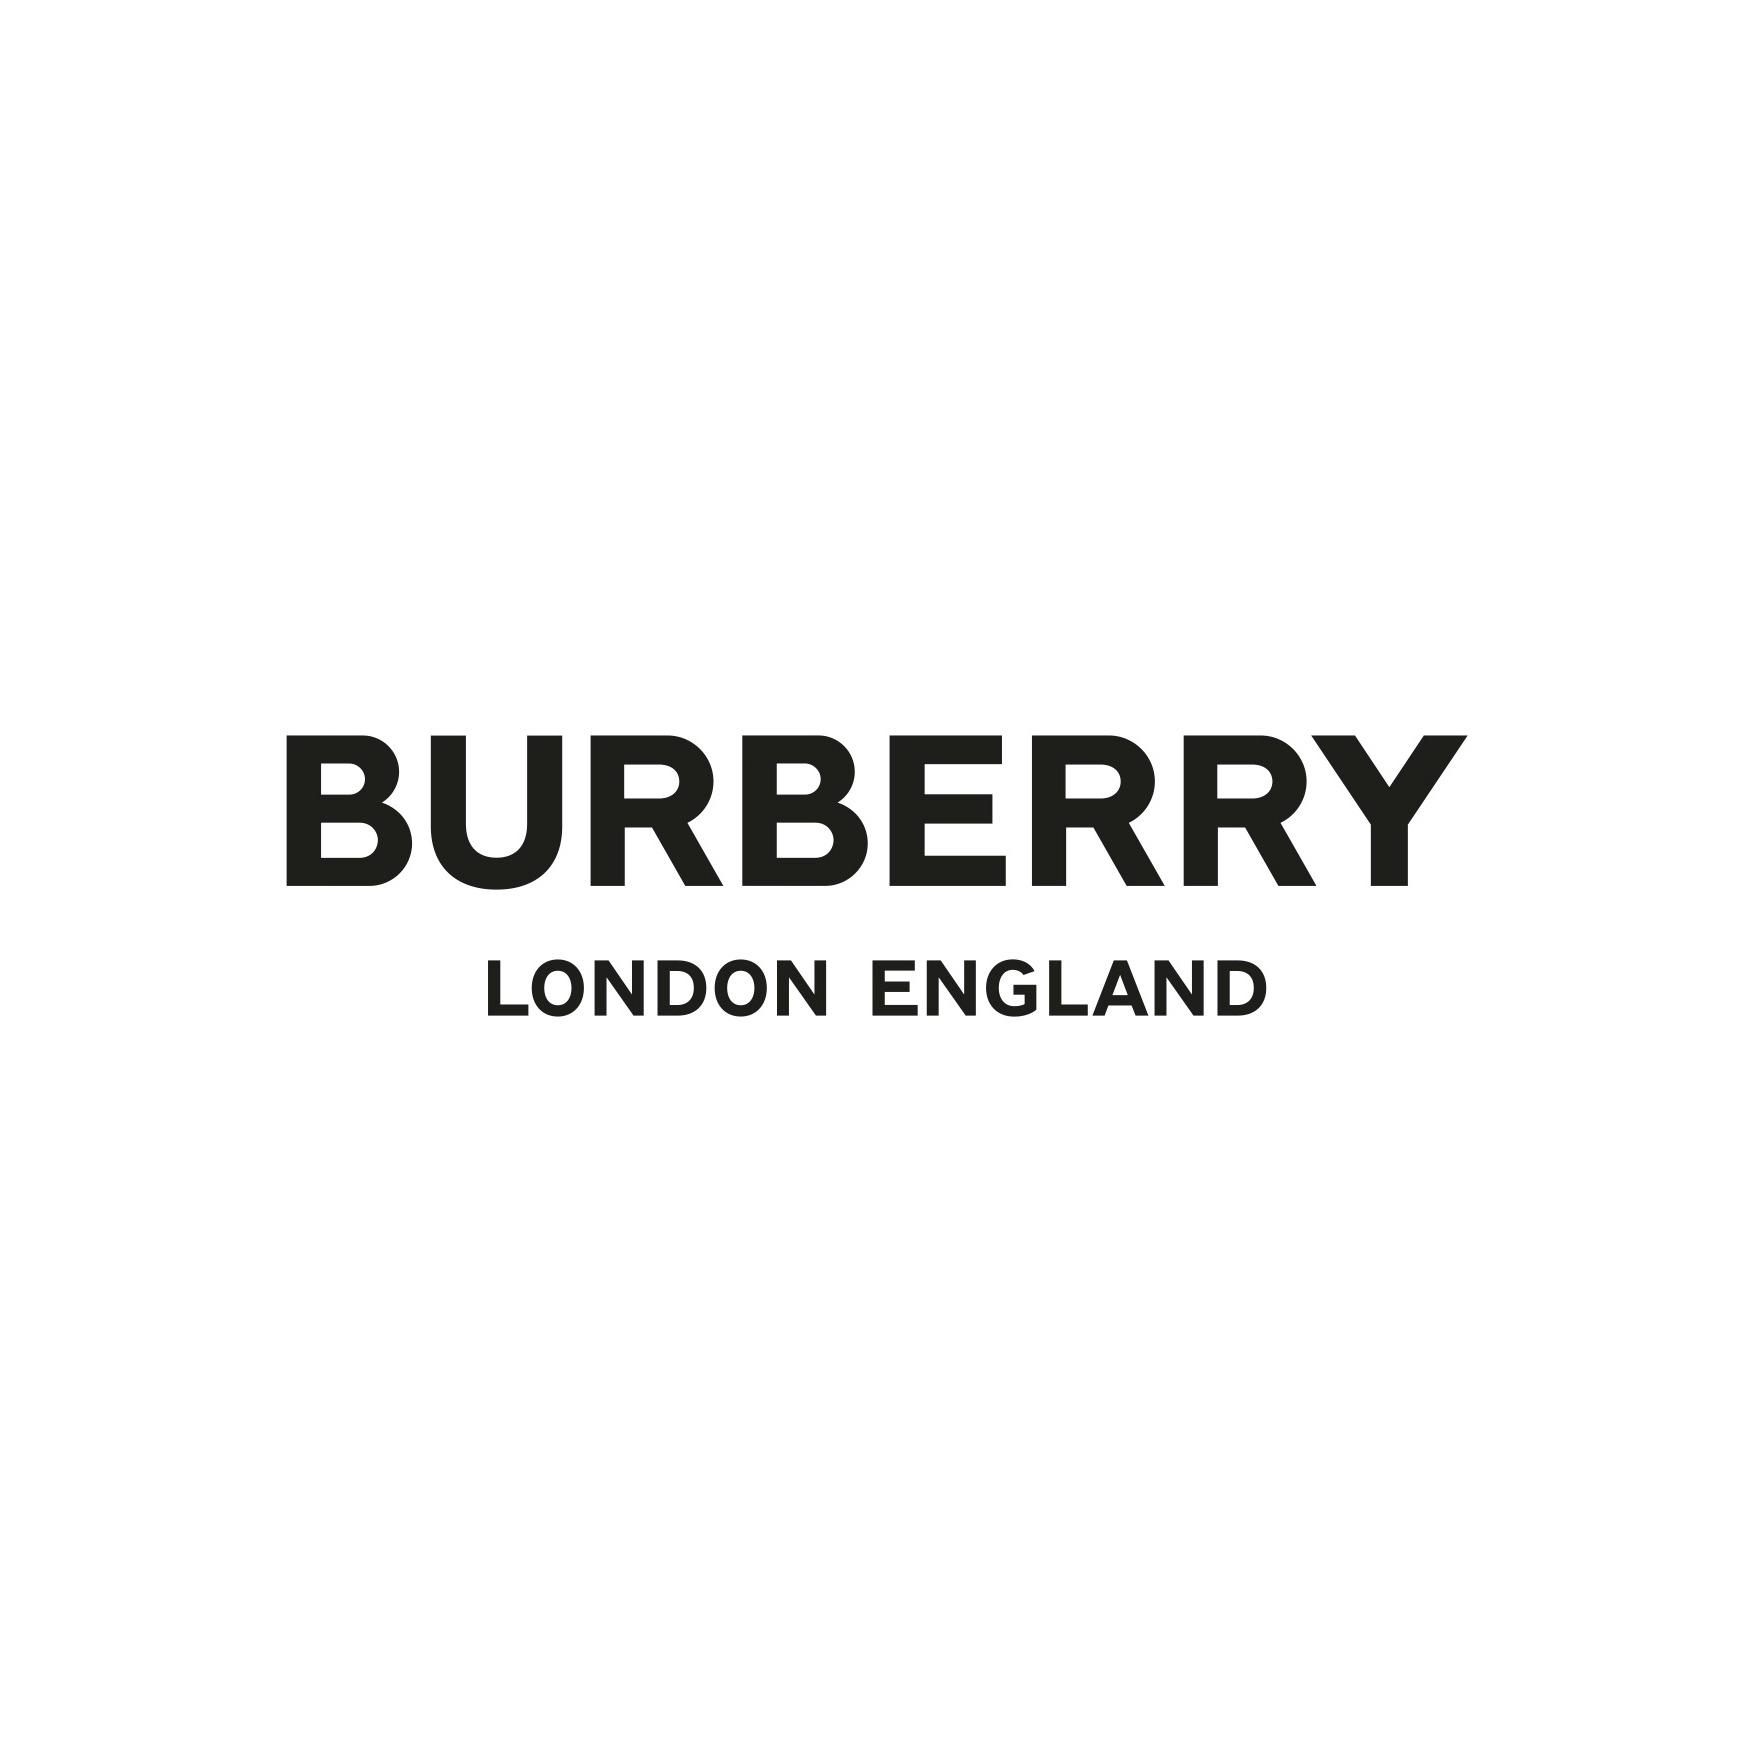 Burberry - New York, NY - Apparel Stores